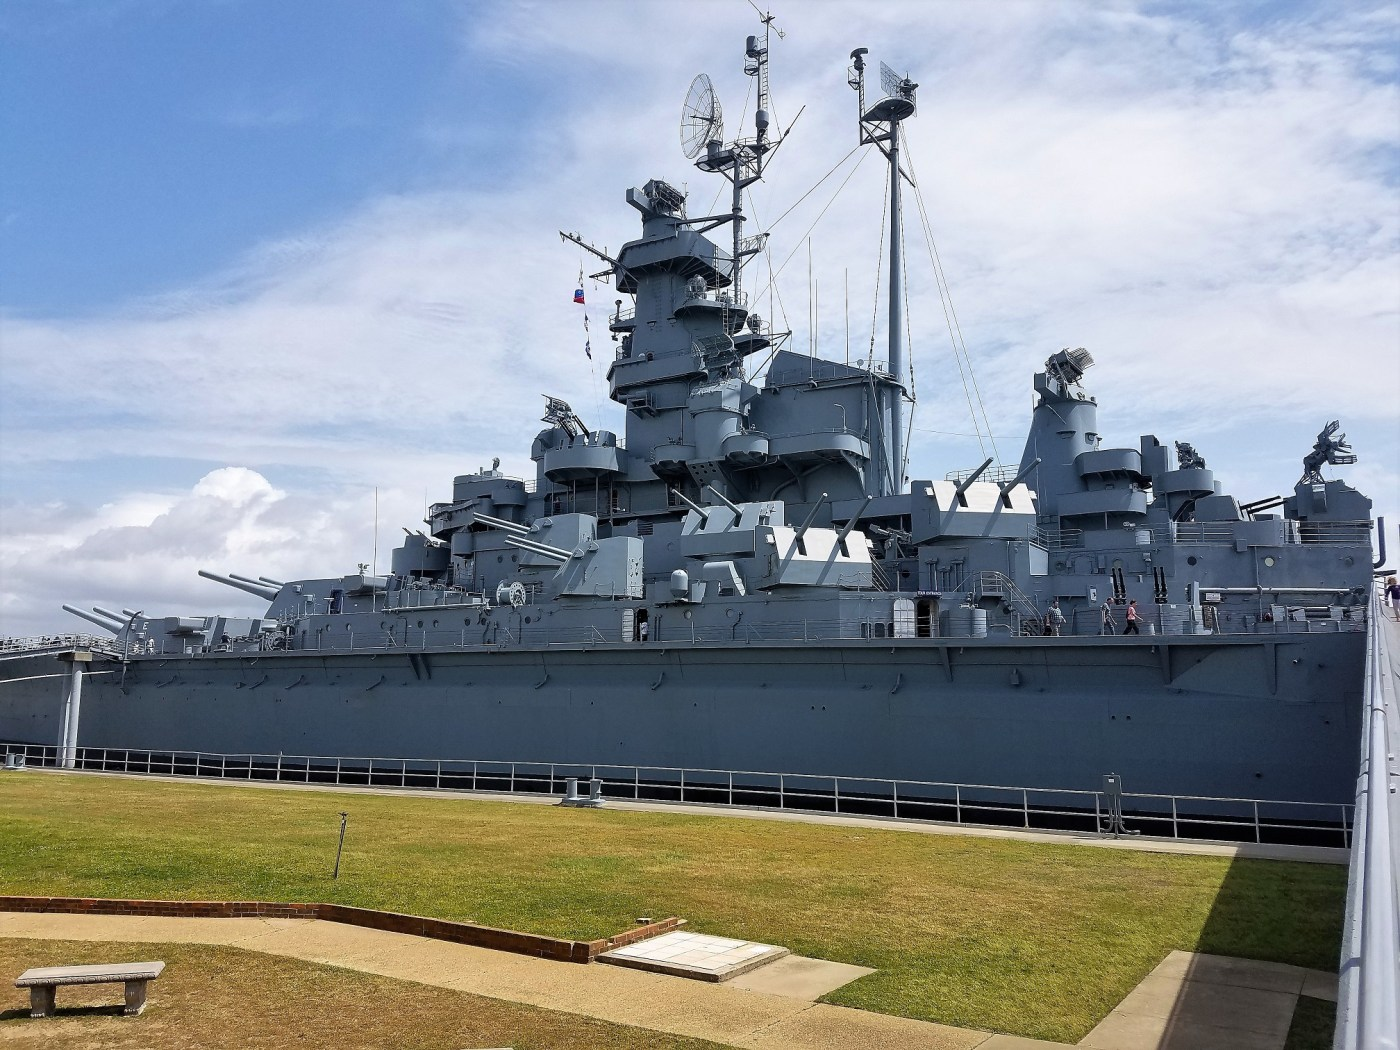 The USS Alabama